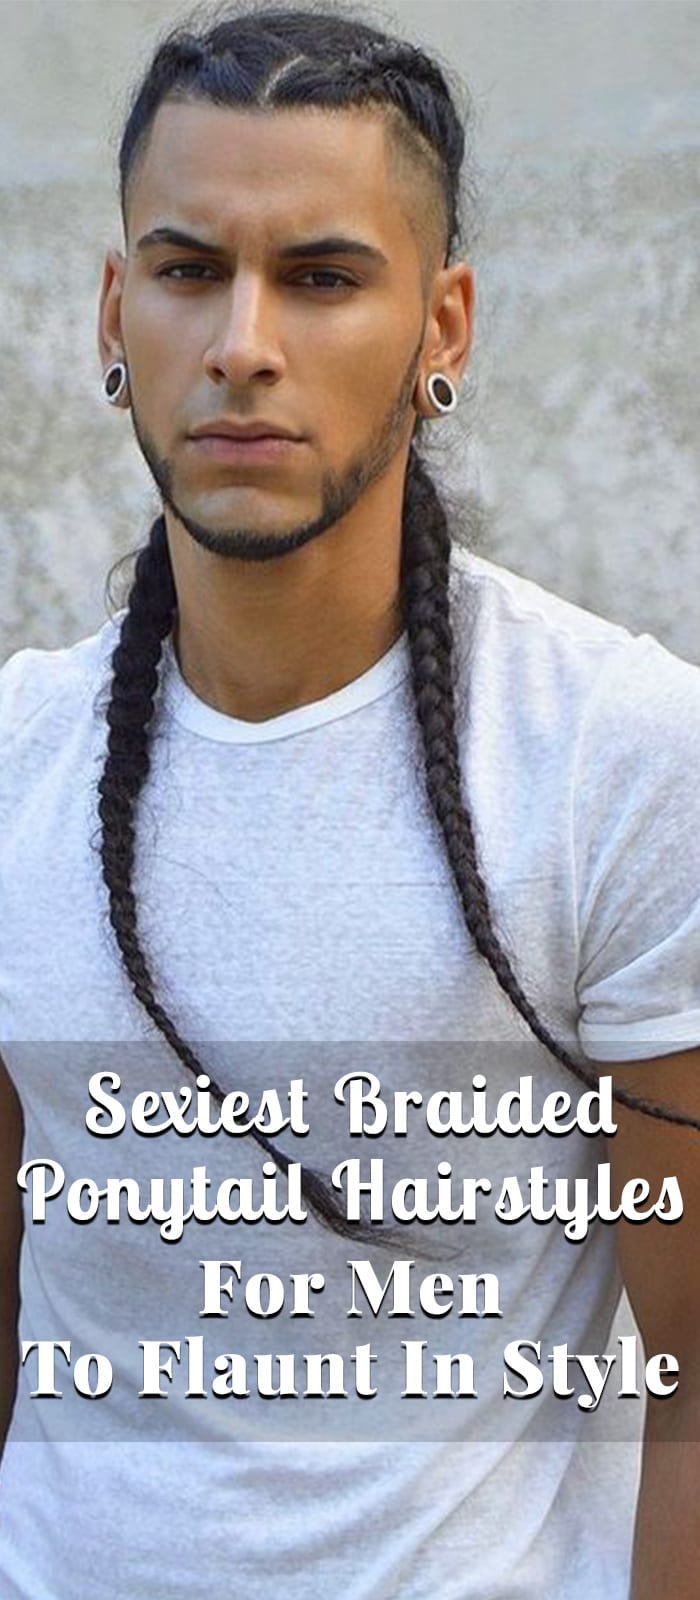 Sexiest Braided Ponytail Hairstyles For Men To Flaunt In Style